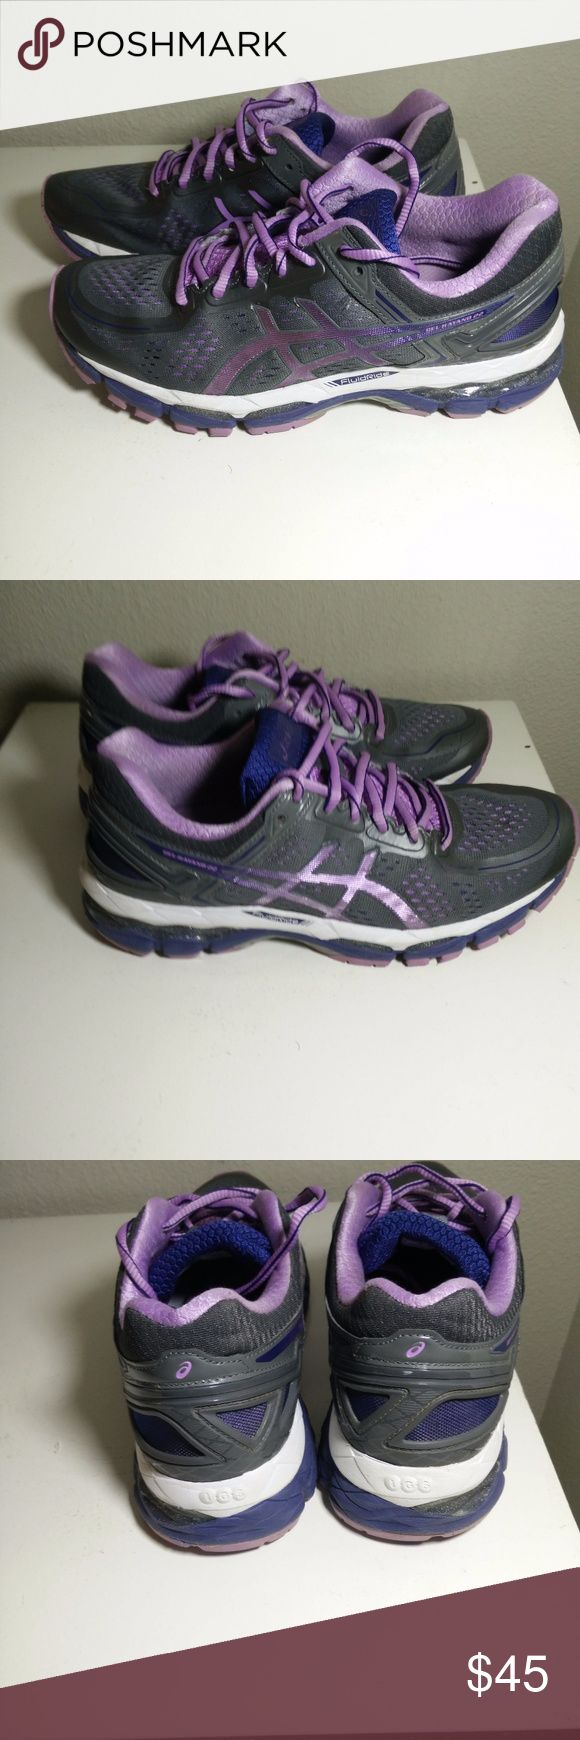 Asics Gel Kayano 22 Womens Running Sneakers Asics Gel Kayano 22 Womens Running Sneakers Athletic T597Q Multicolor Size 8 - Great Looking Sneakers showing signs of normal wear but still in VERY GOOD wearable condition with no  obvious flaws to note. (ref#1862) Asics Shoes Athletic Shoes